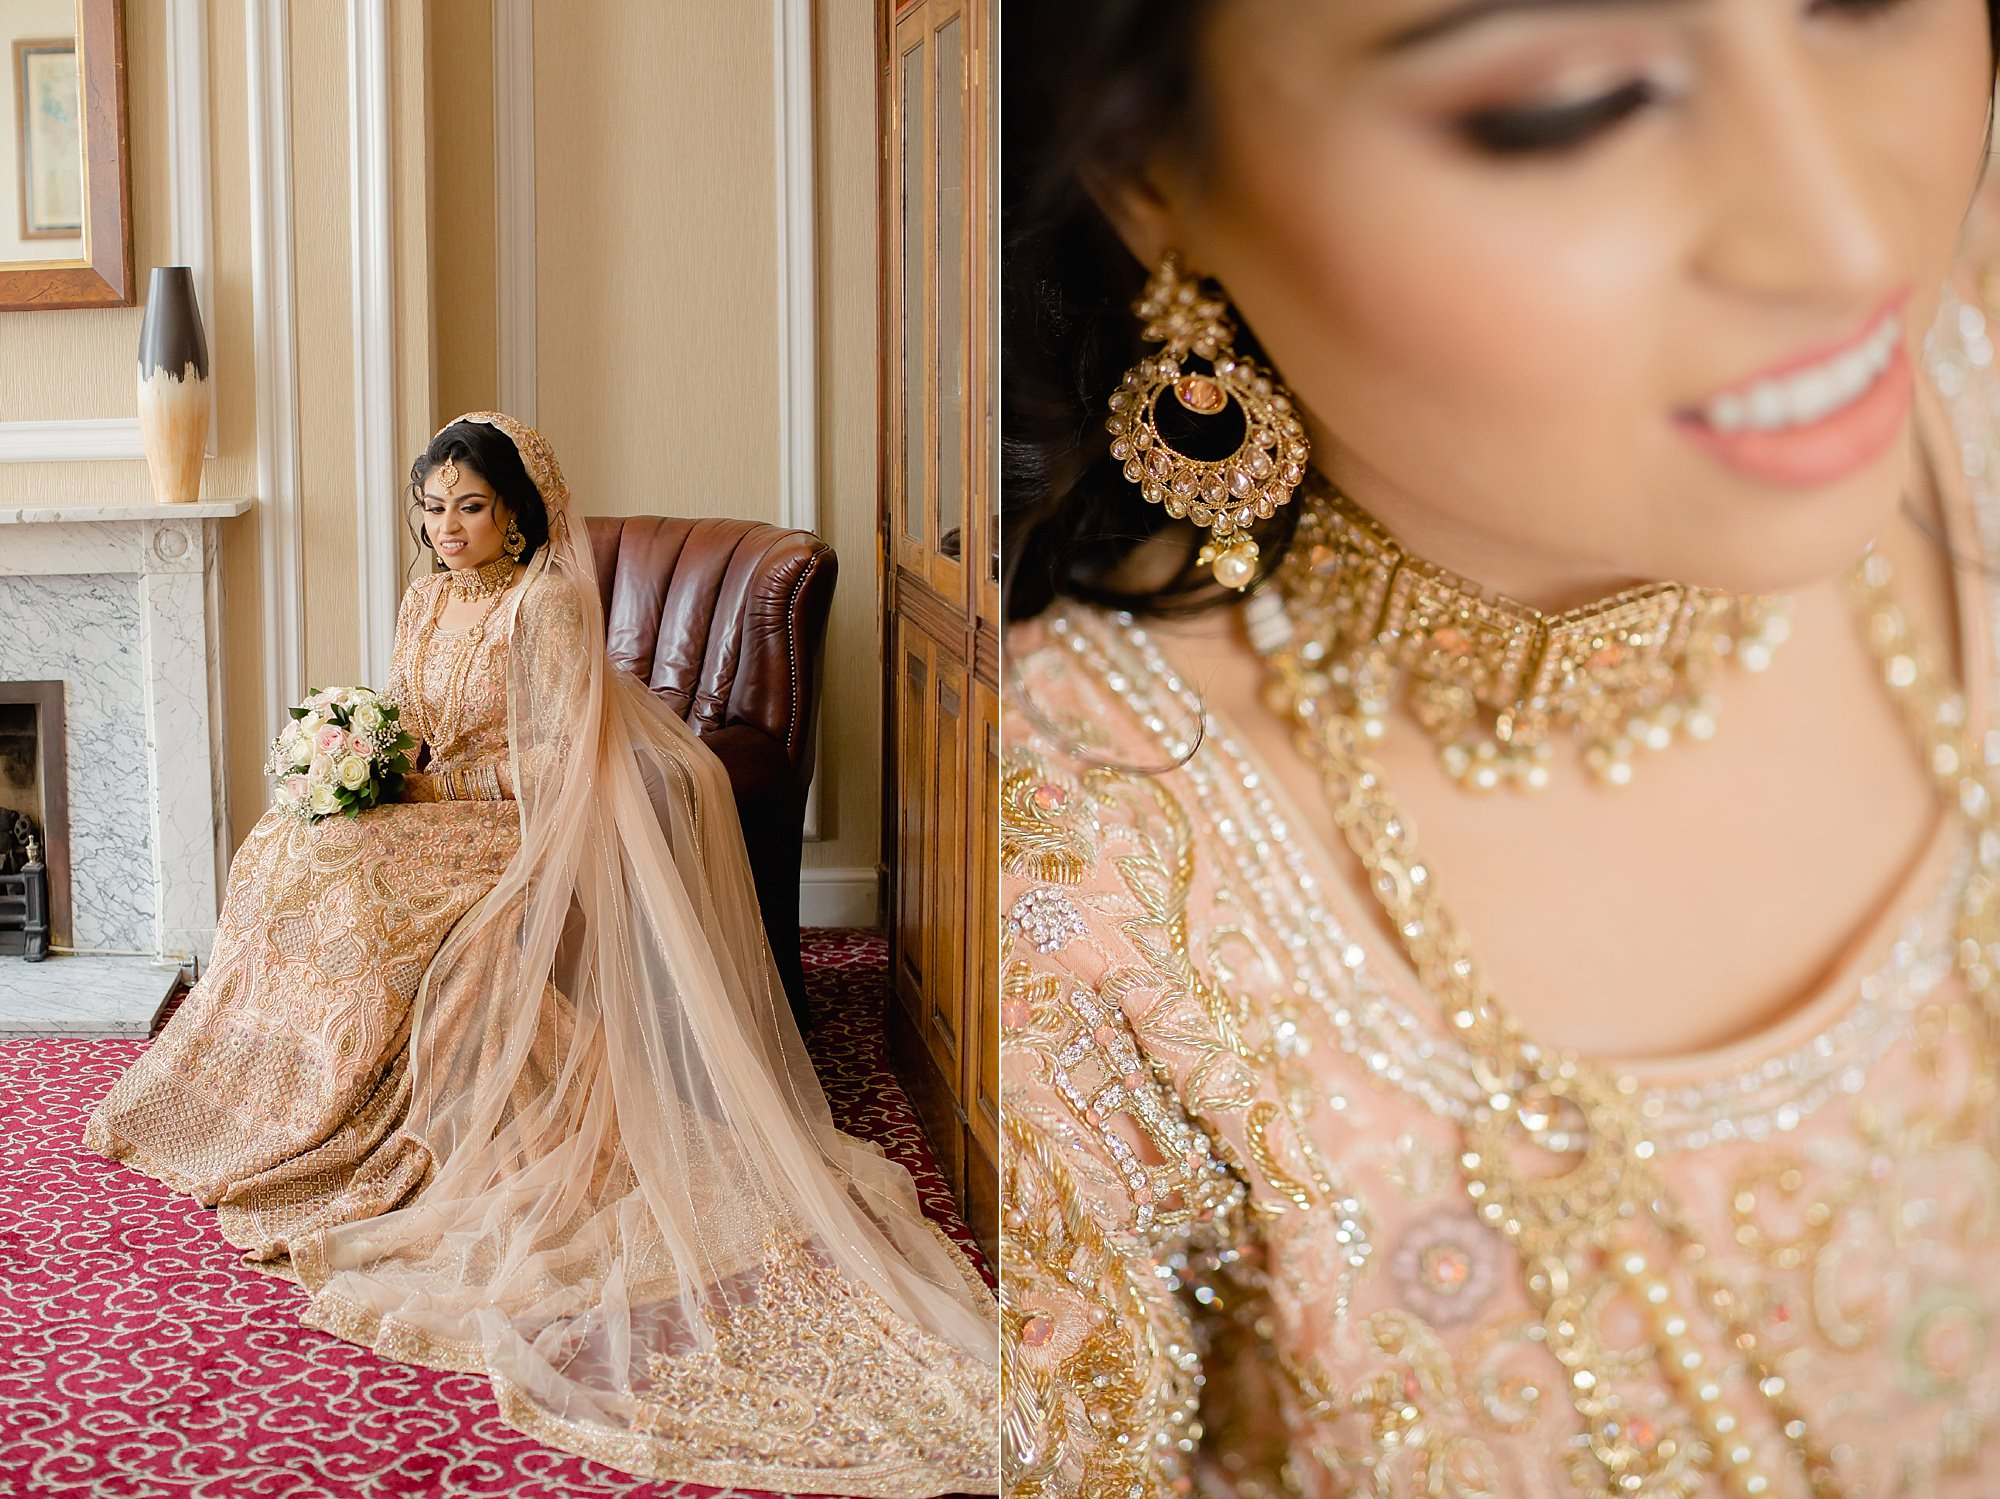 Asian Bride portraits at Hilton Hall, Wolverhampton